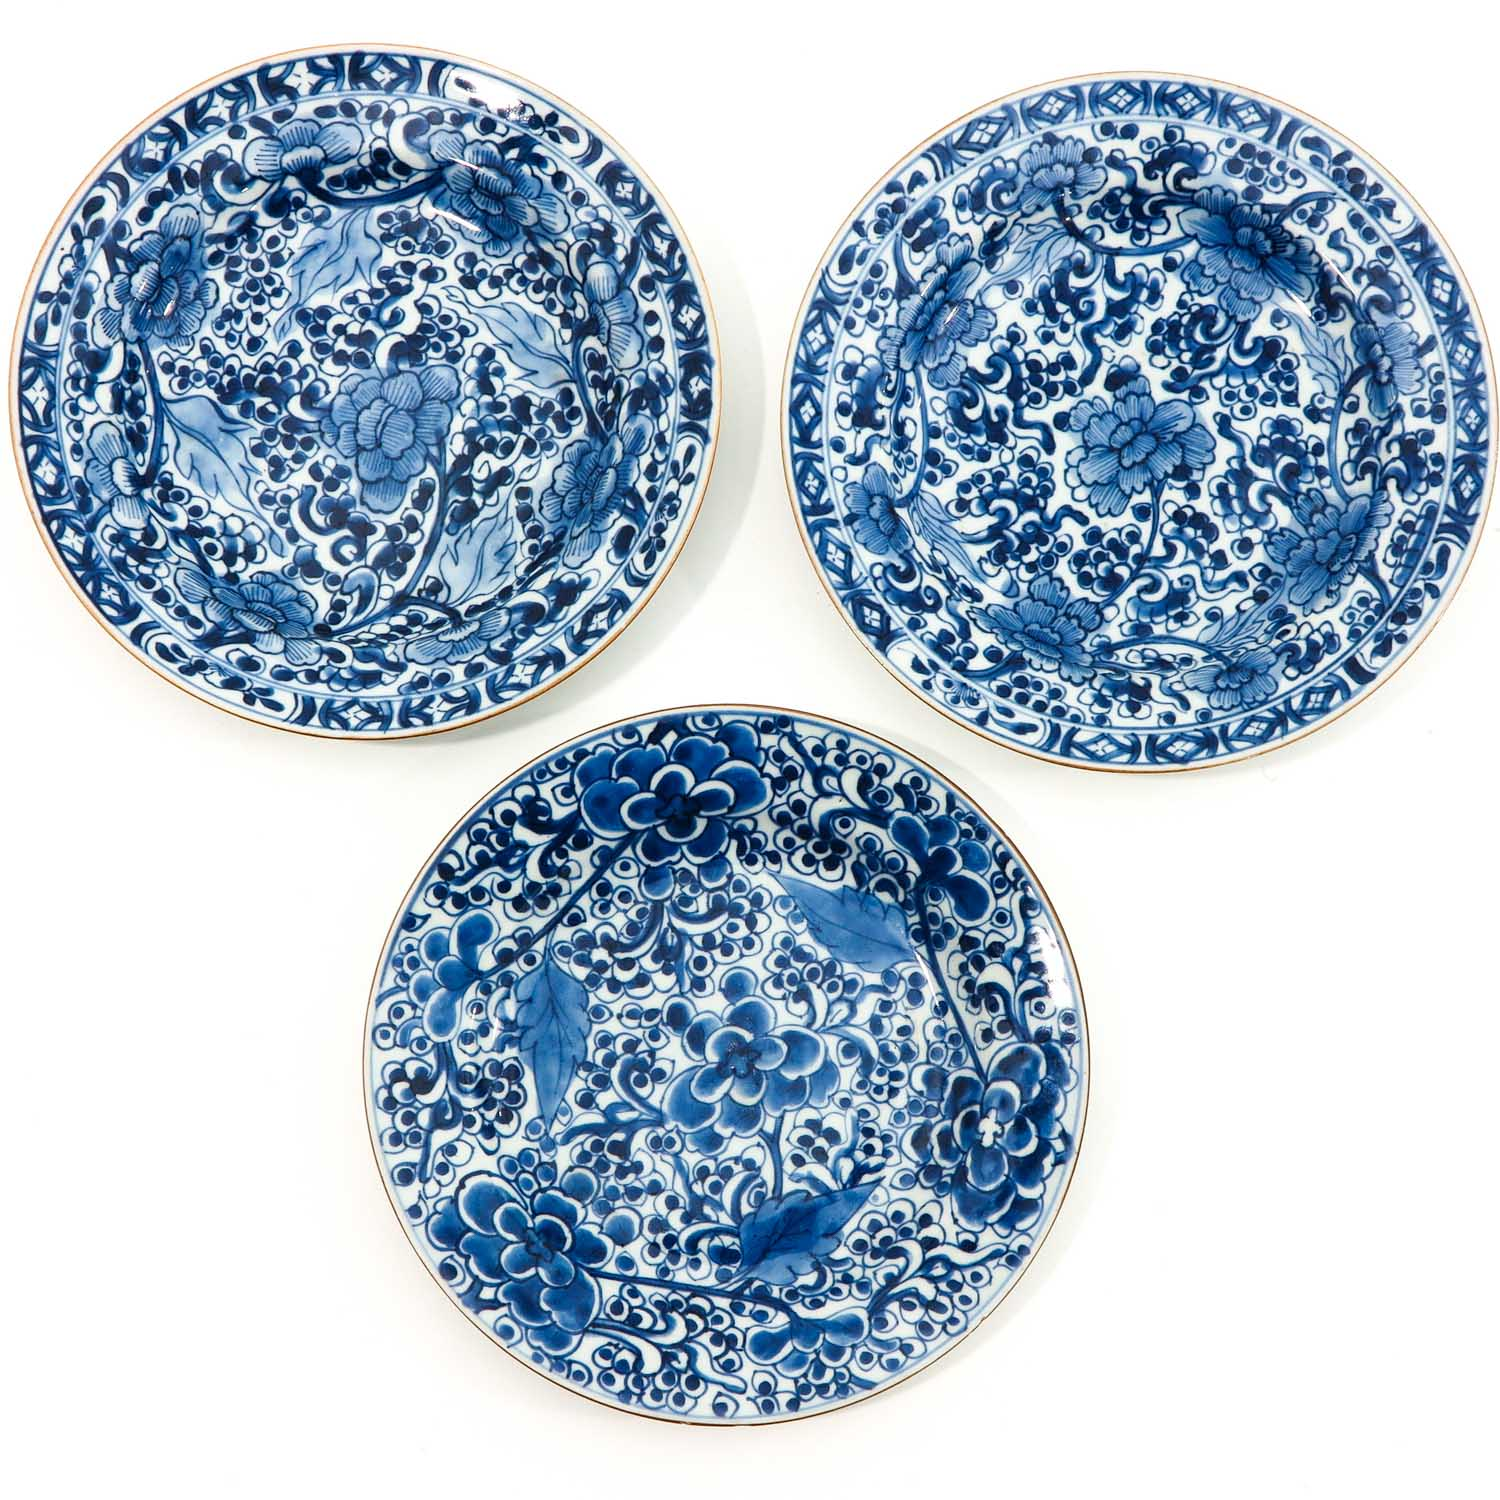 A Series of 5 Blue and White Plates - Image 3 of 10